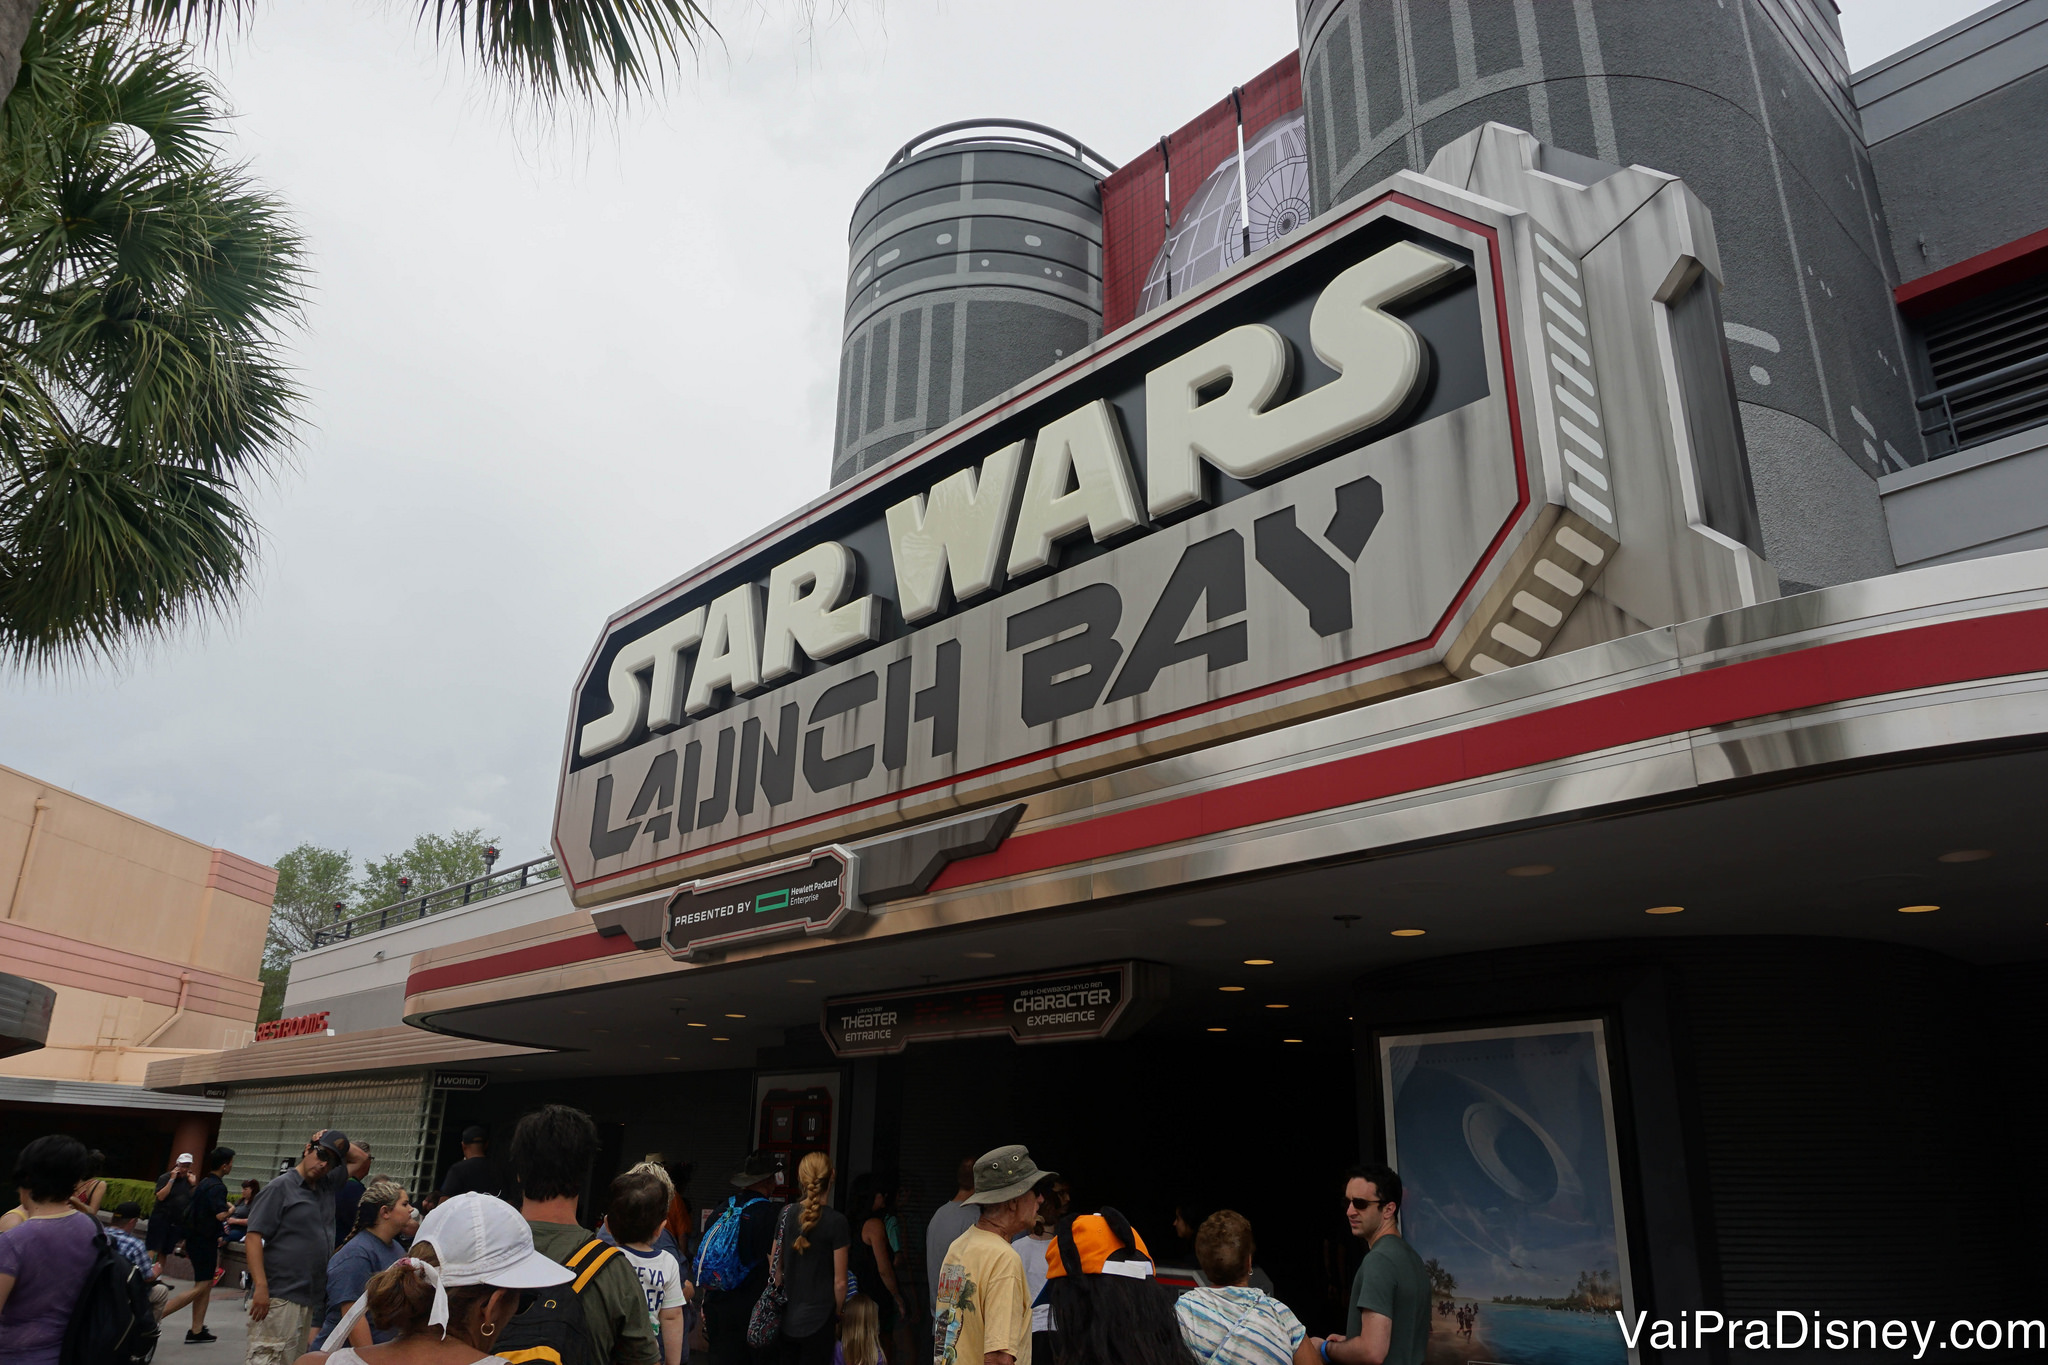 Launch Bay, para os apaixonados por Star Wars.